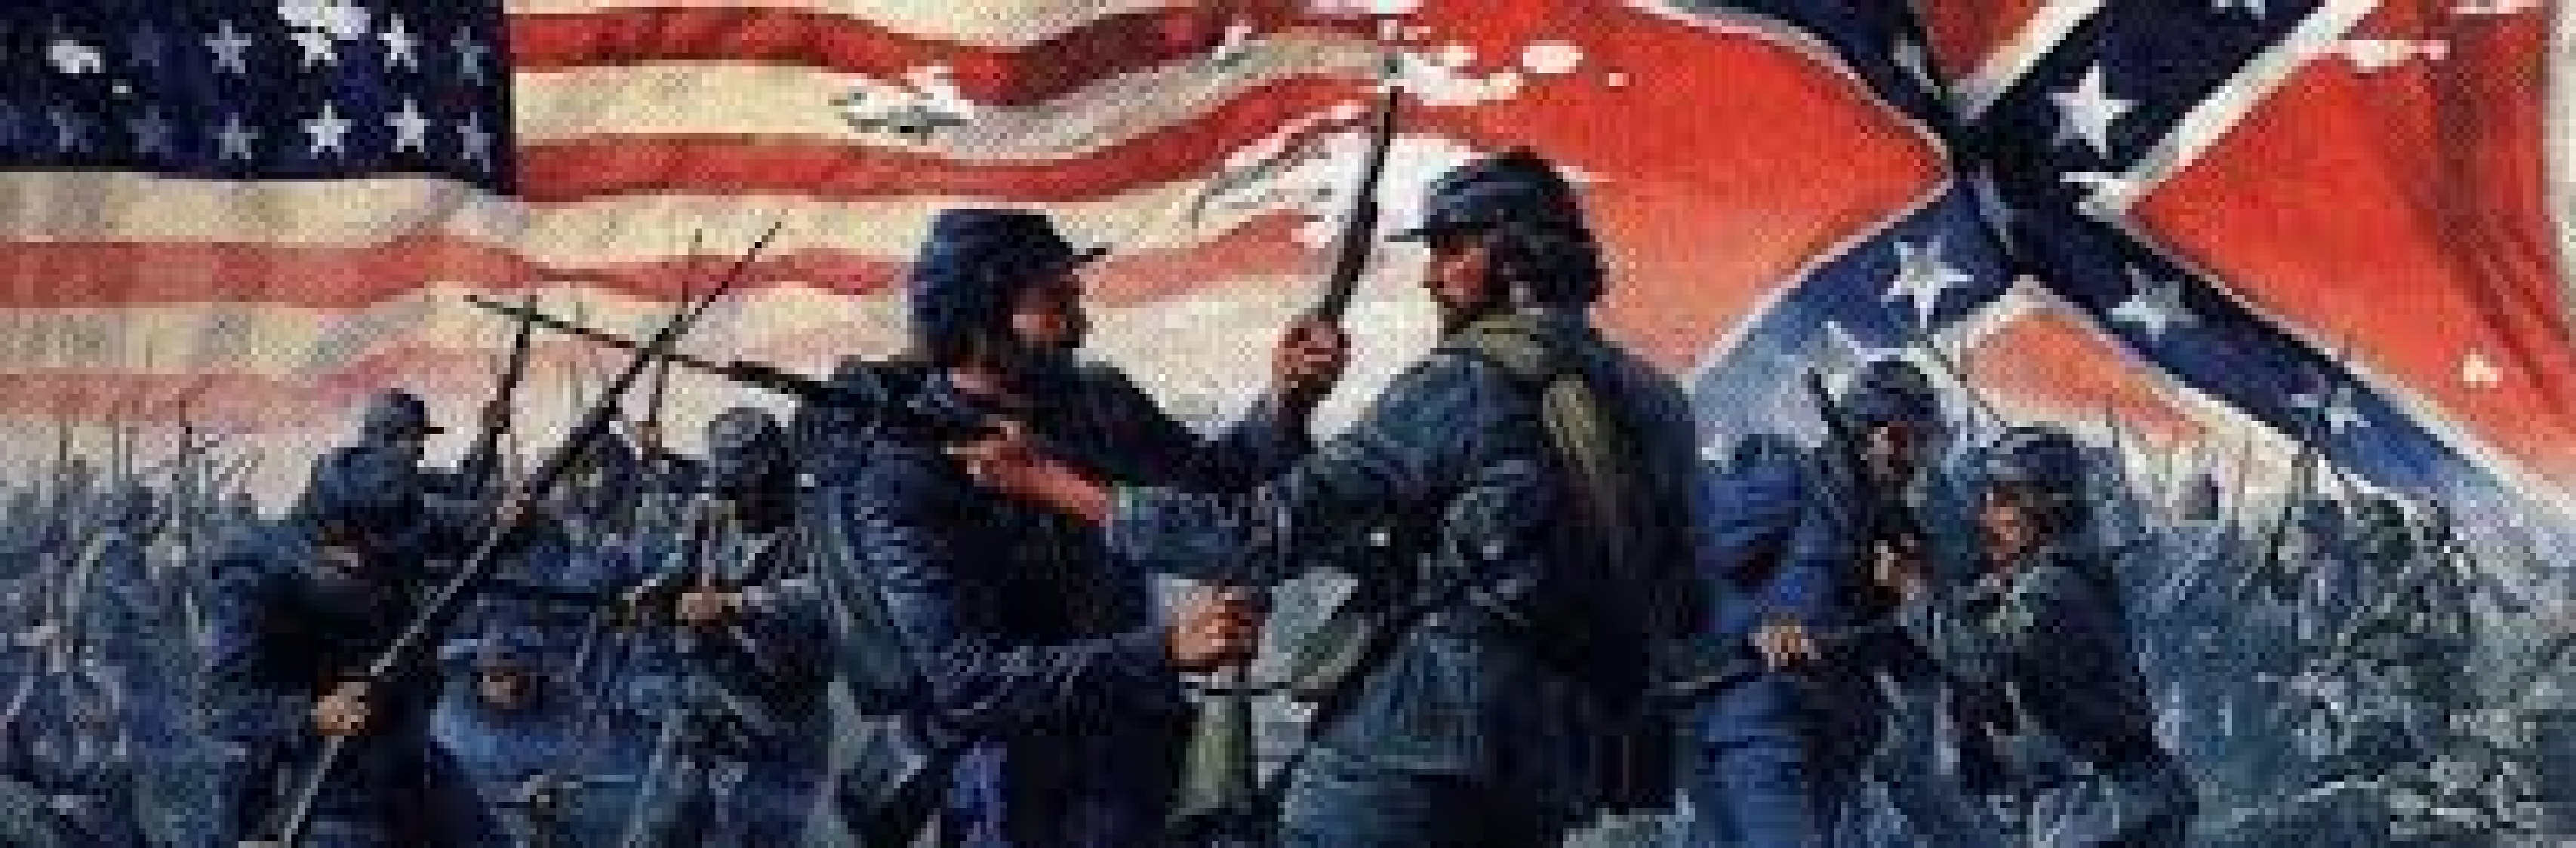 the civil war of america American civil war, also called war between the states, four-year war (1861–65) between the united states and 11 southern states that seceded from the union and formed the confederate states of america by contrast, the southern economy was based principally on large farms (plantations) that.